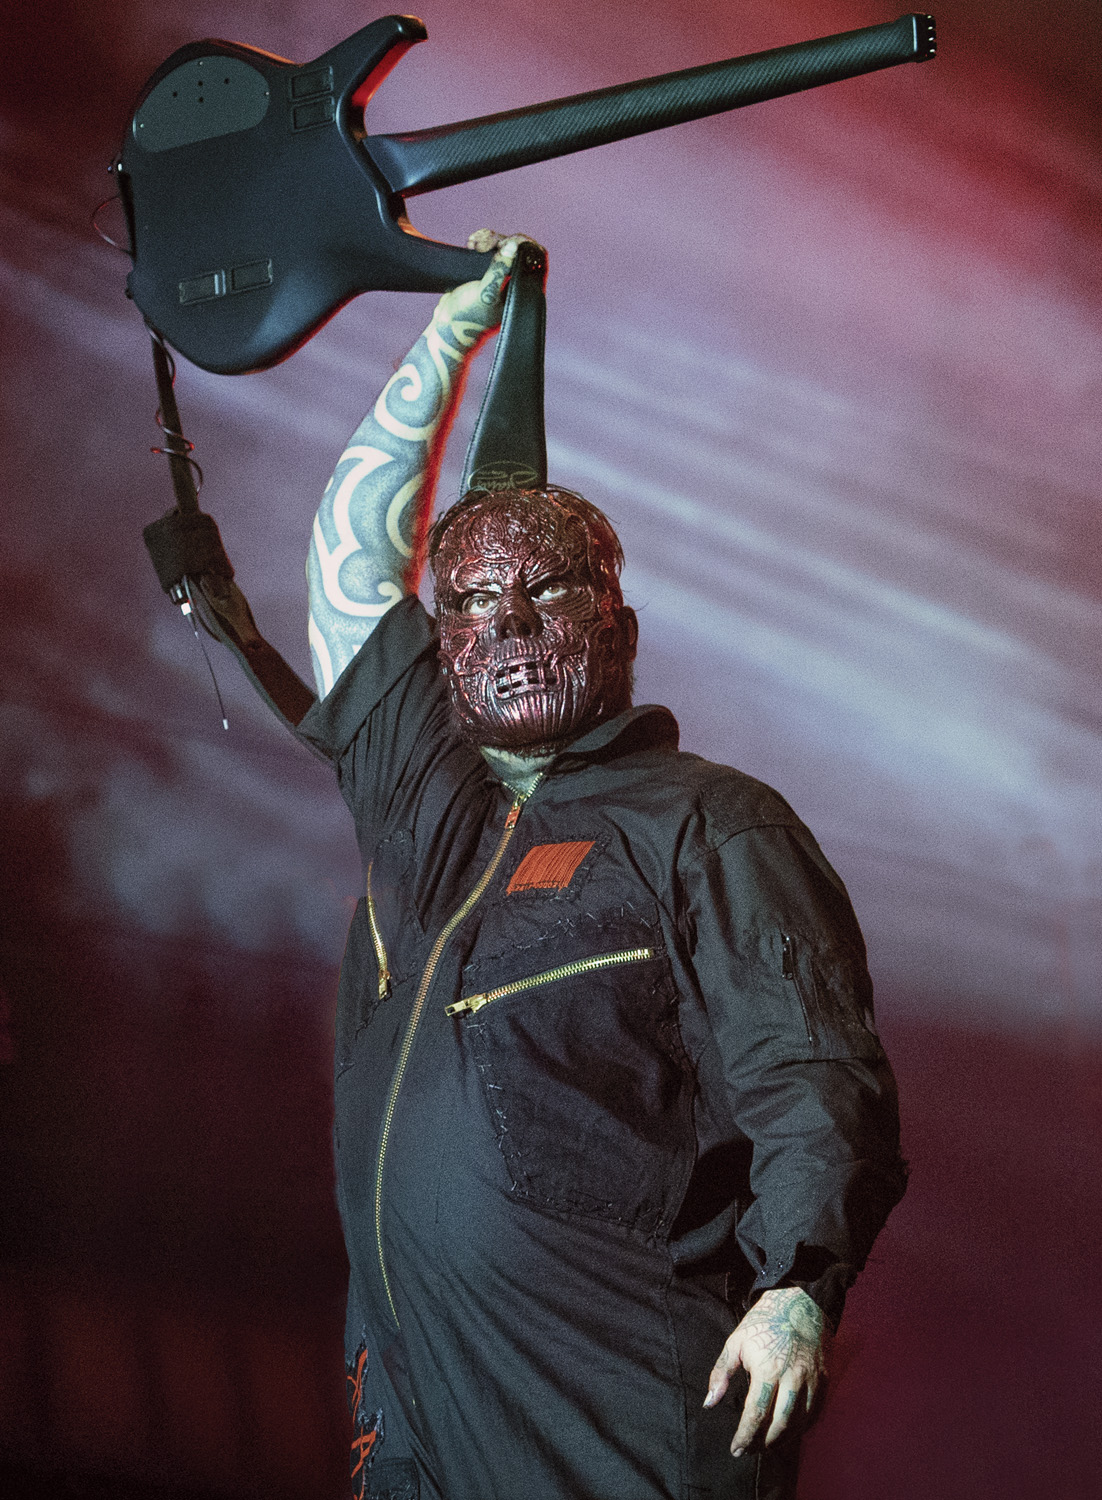 Slipknot_June2019_DownloadFestival_05.jpg